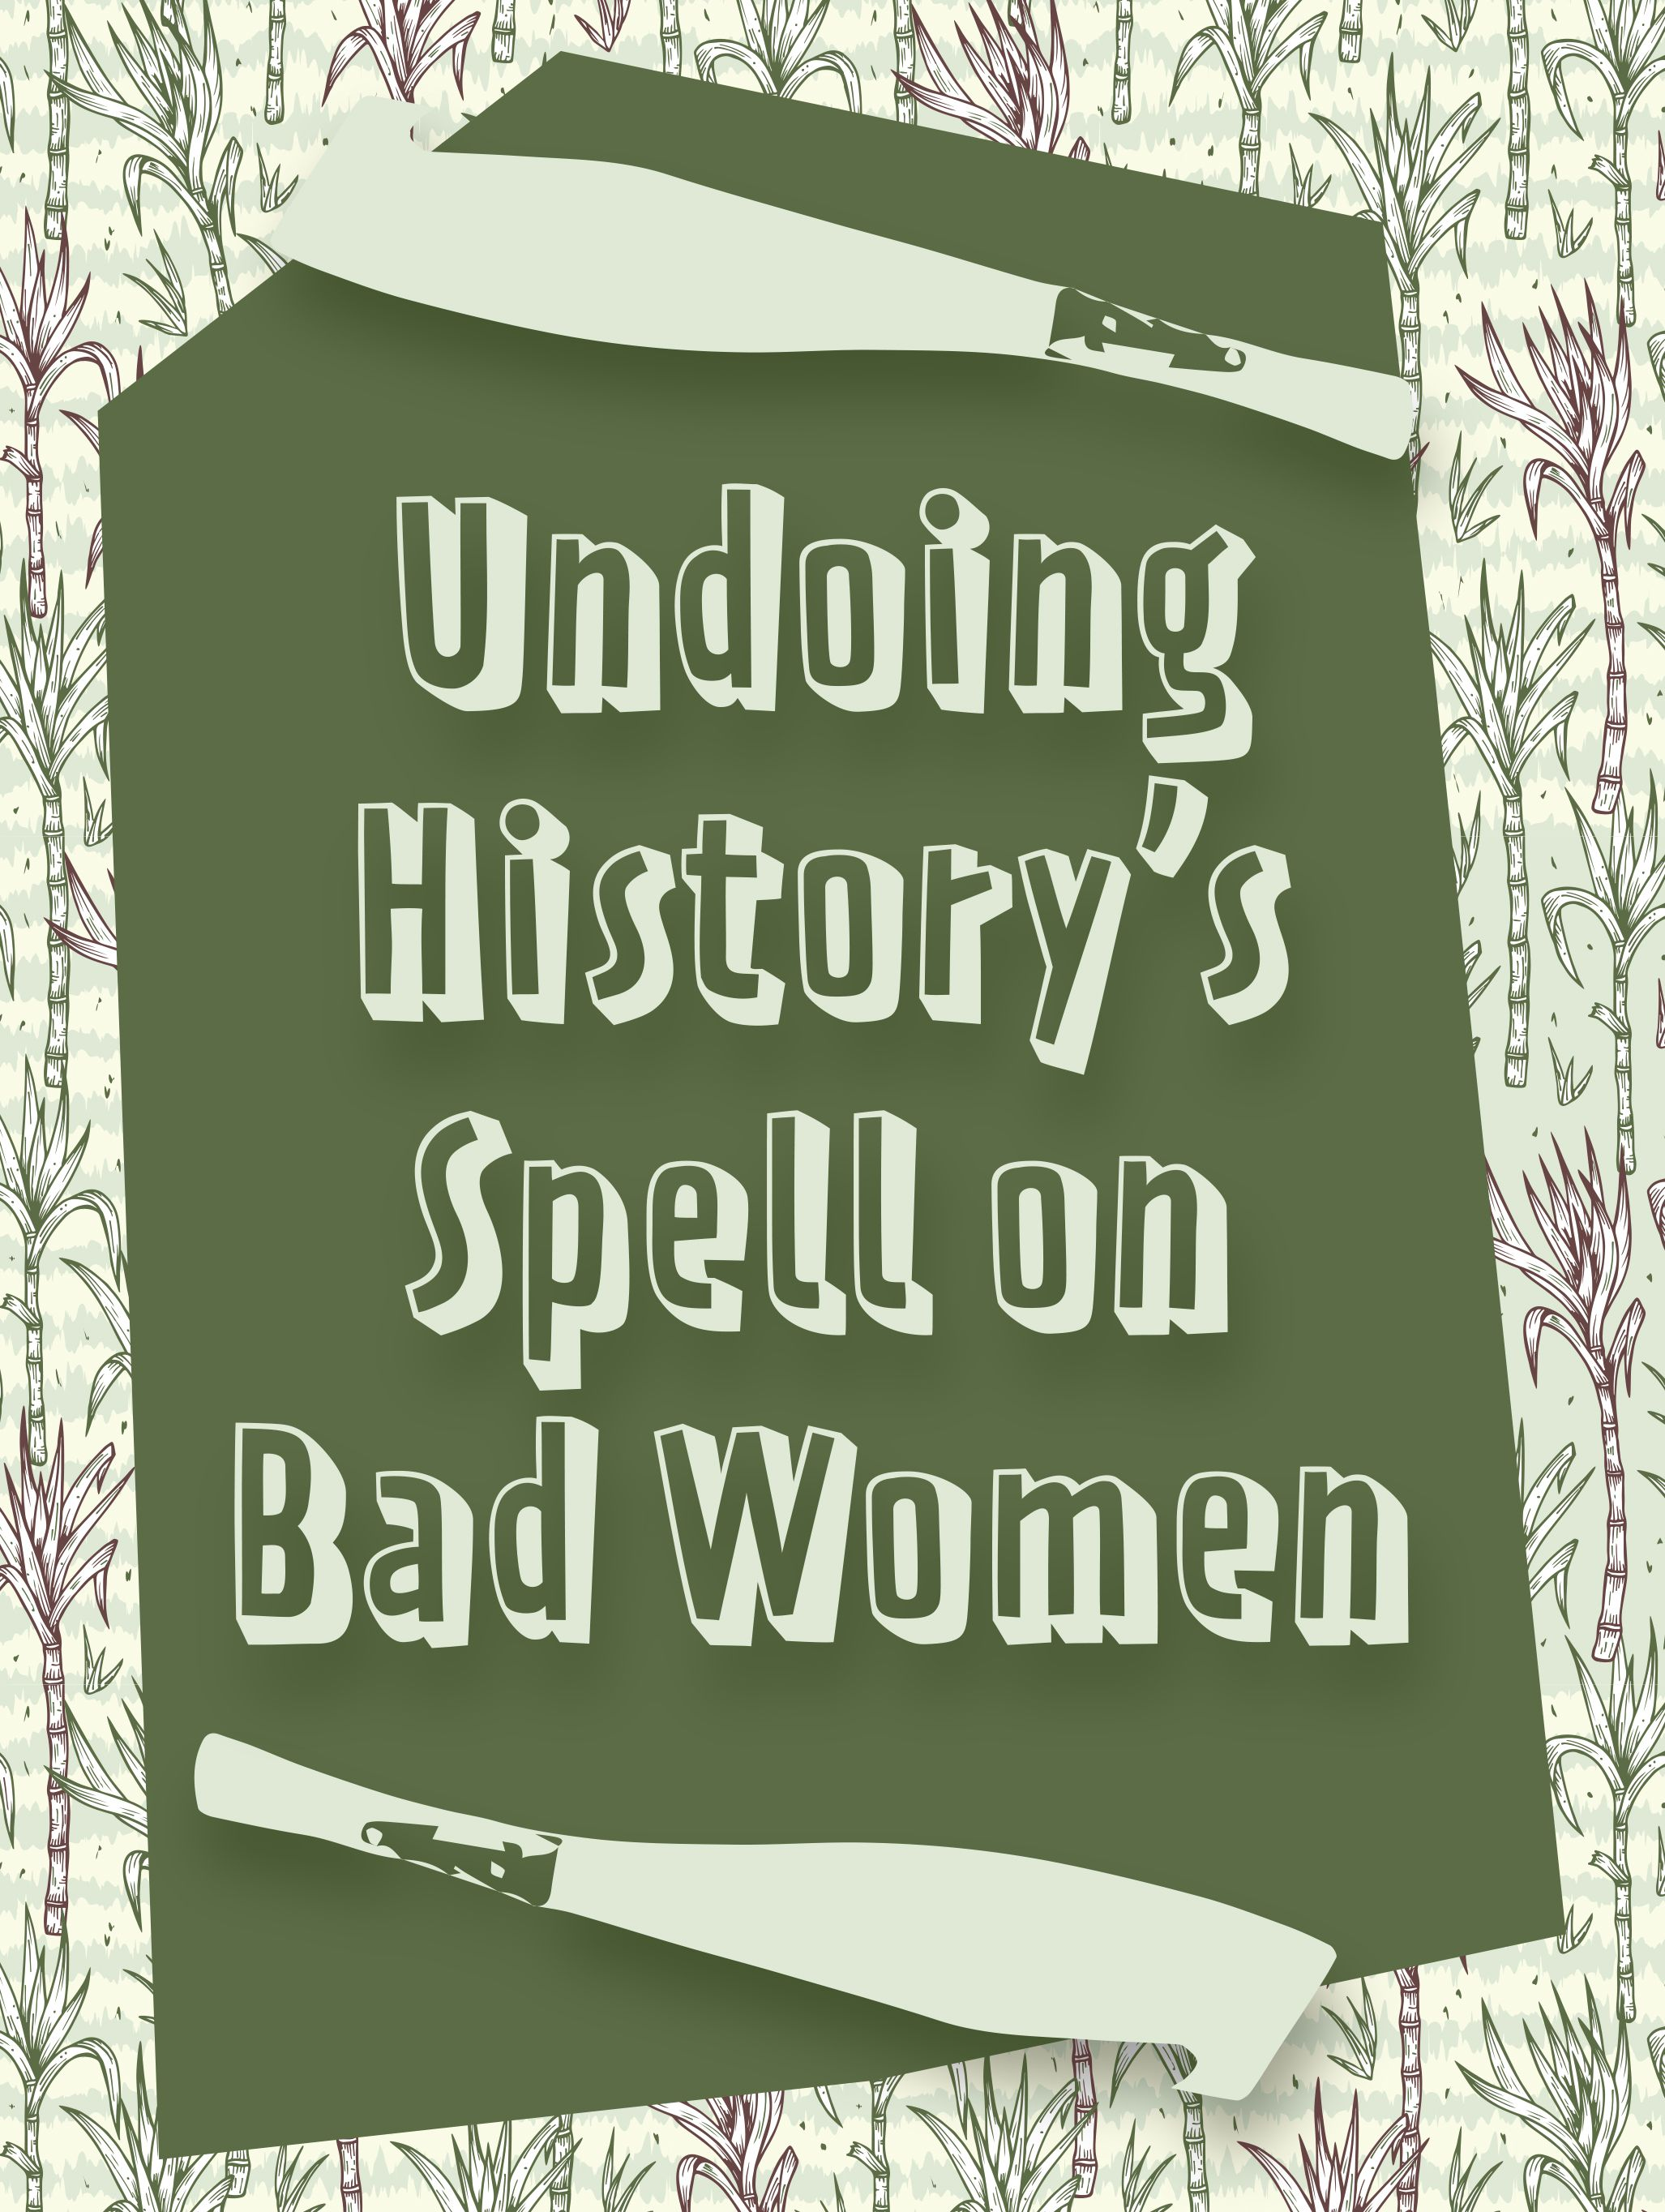 Essay cover and title. Background with green and purple sugarcane shoots. Block of dark green text box with text that reads: Undoing History's Spell on Bad Women. Two large vectors of machete knives are placed under and over the title.